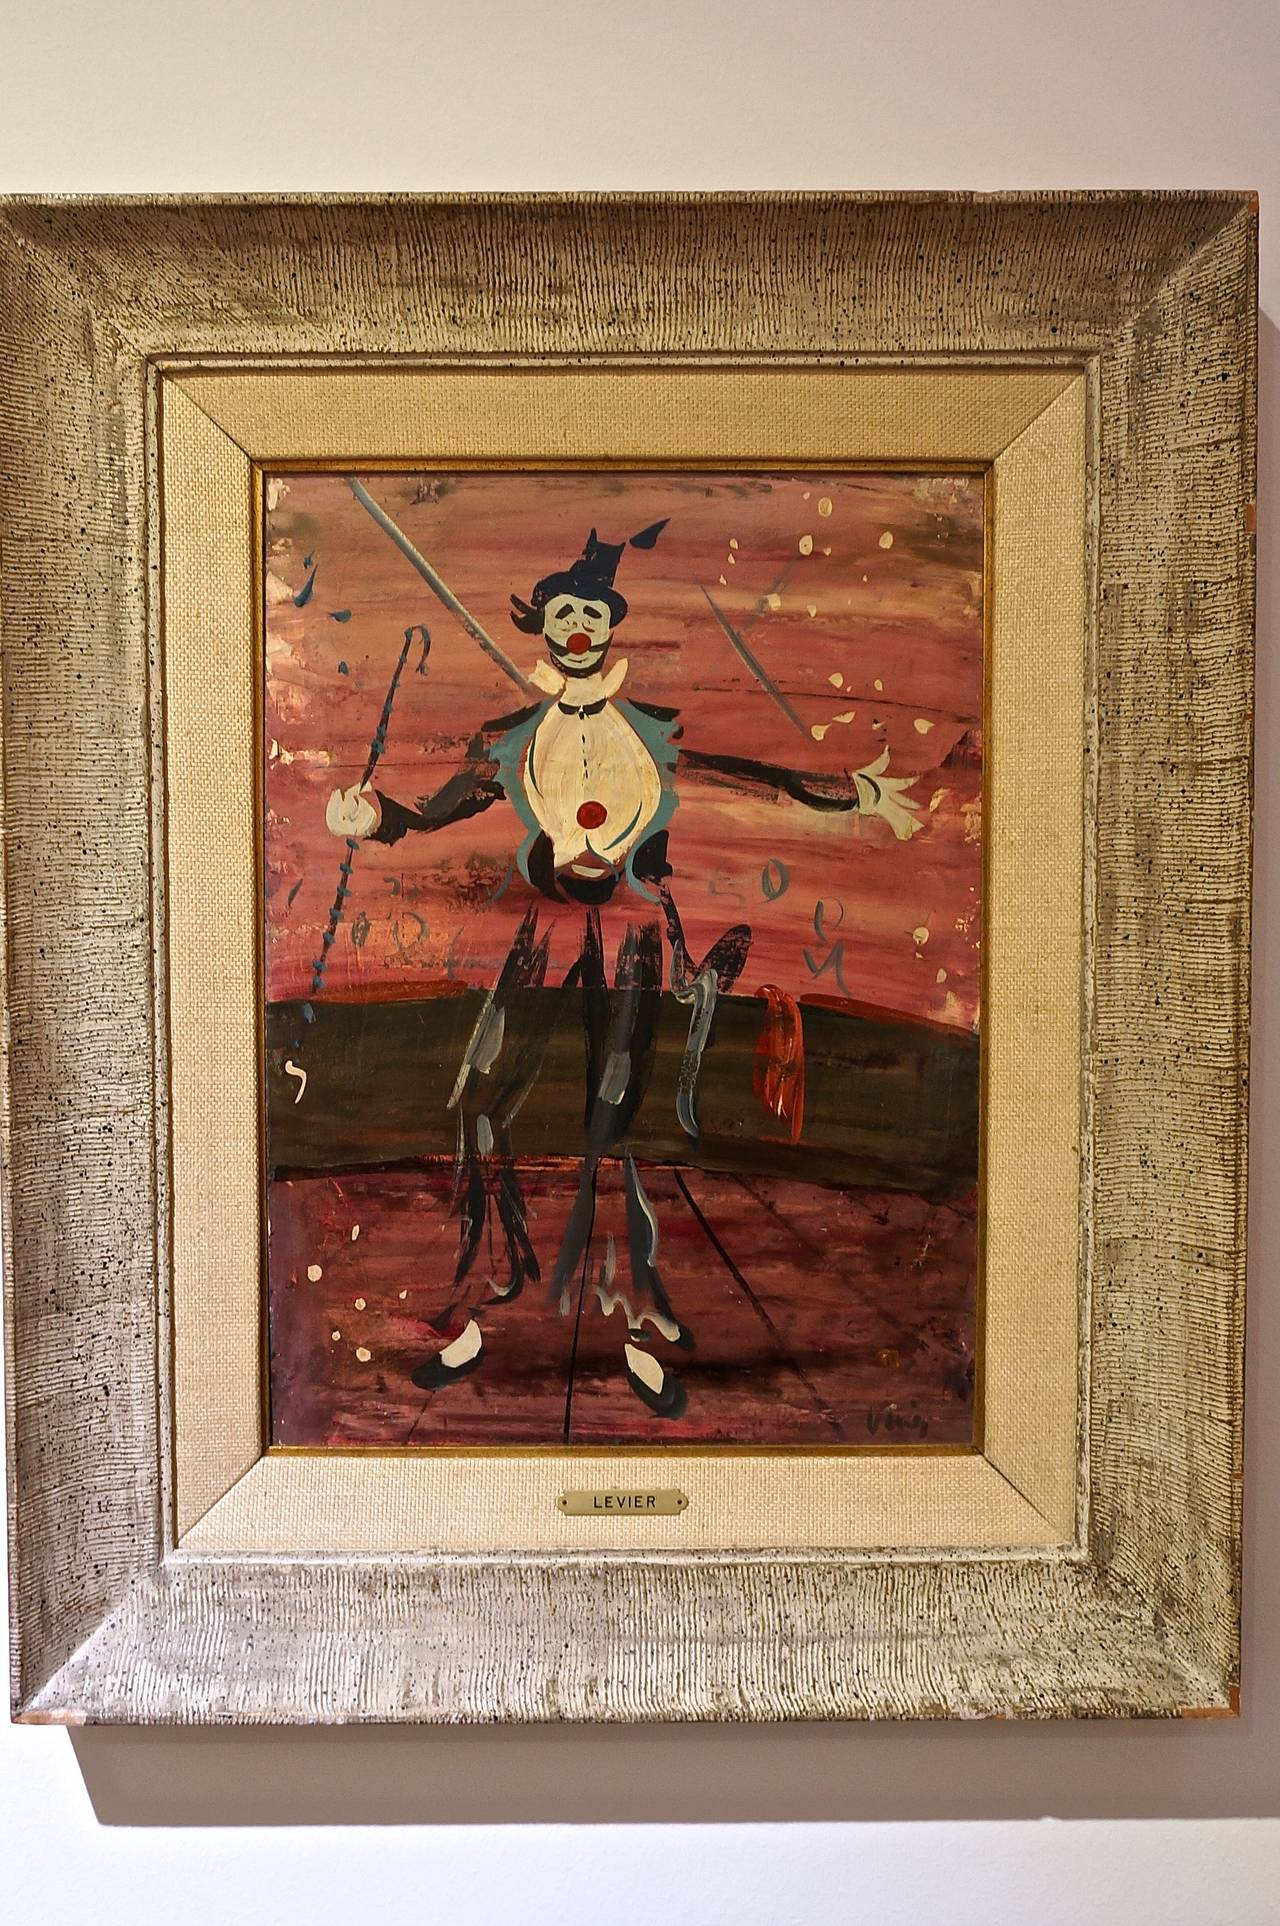 Glass Mid-Century Oil Painting by Iconic French Painter Charles Levier For Sale